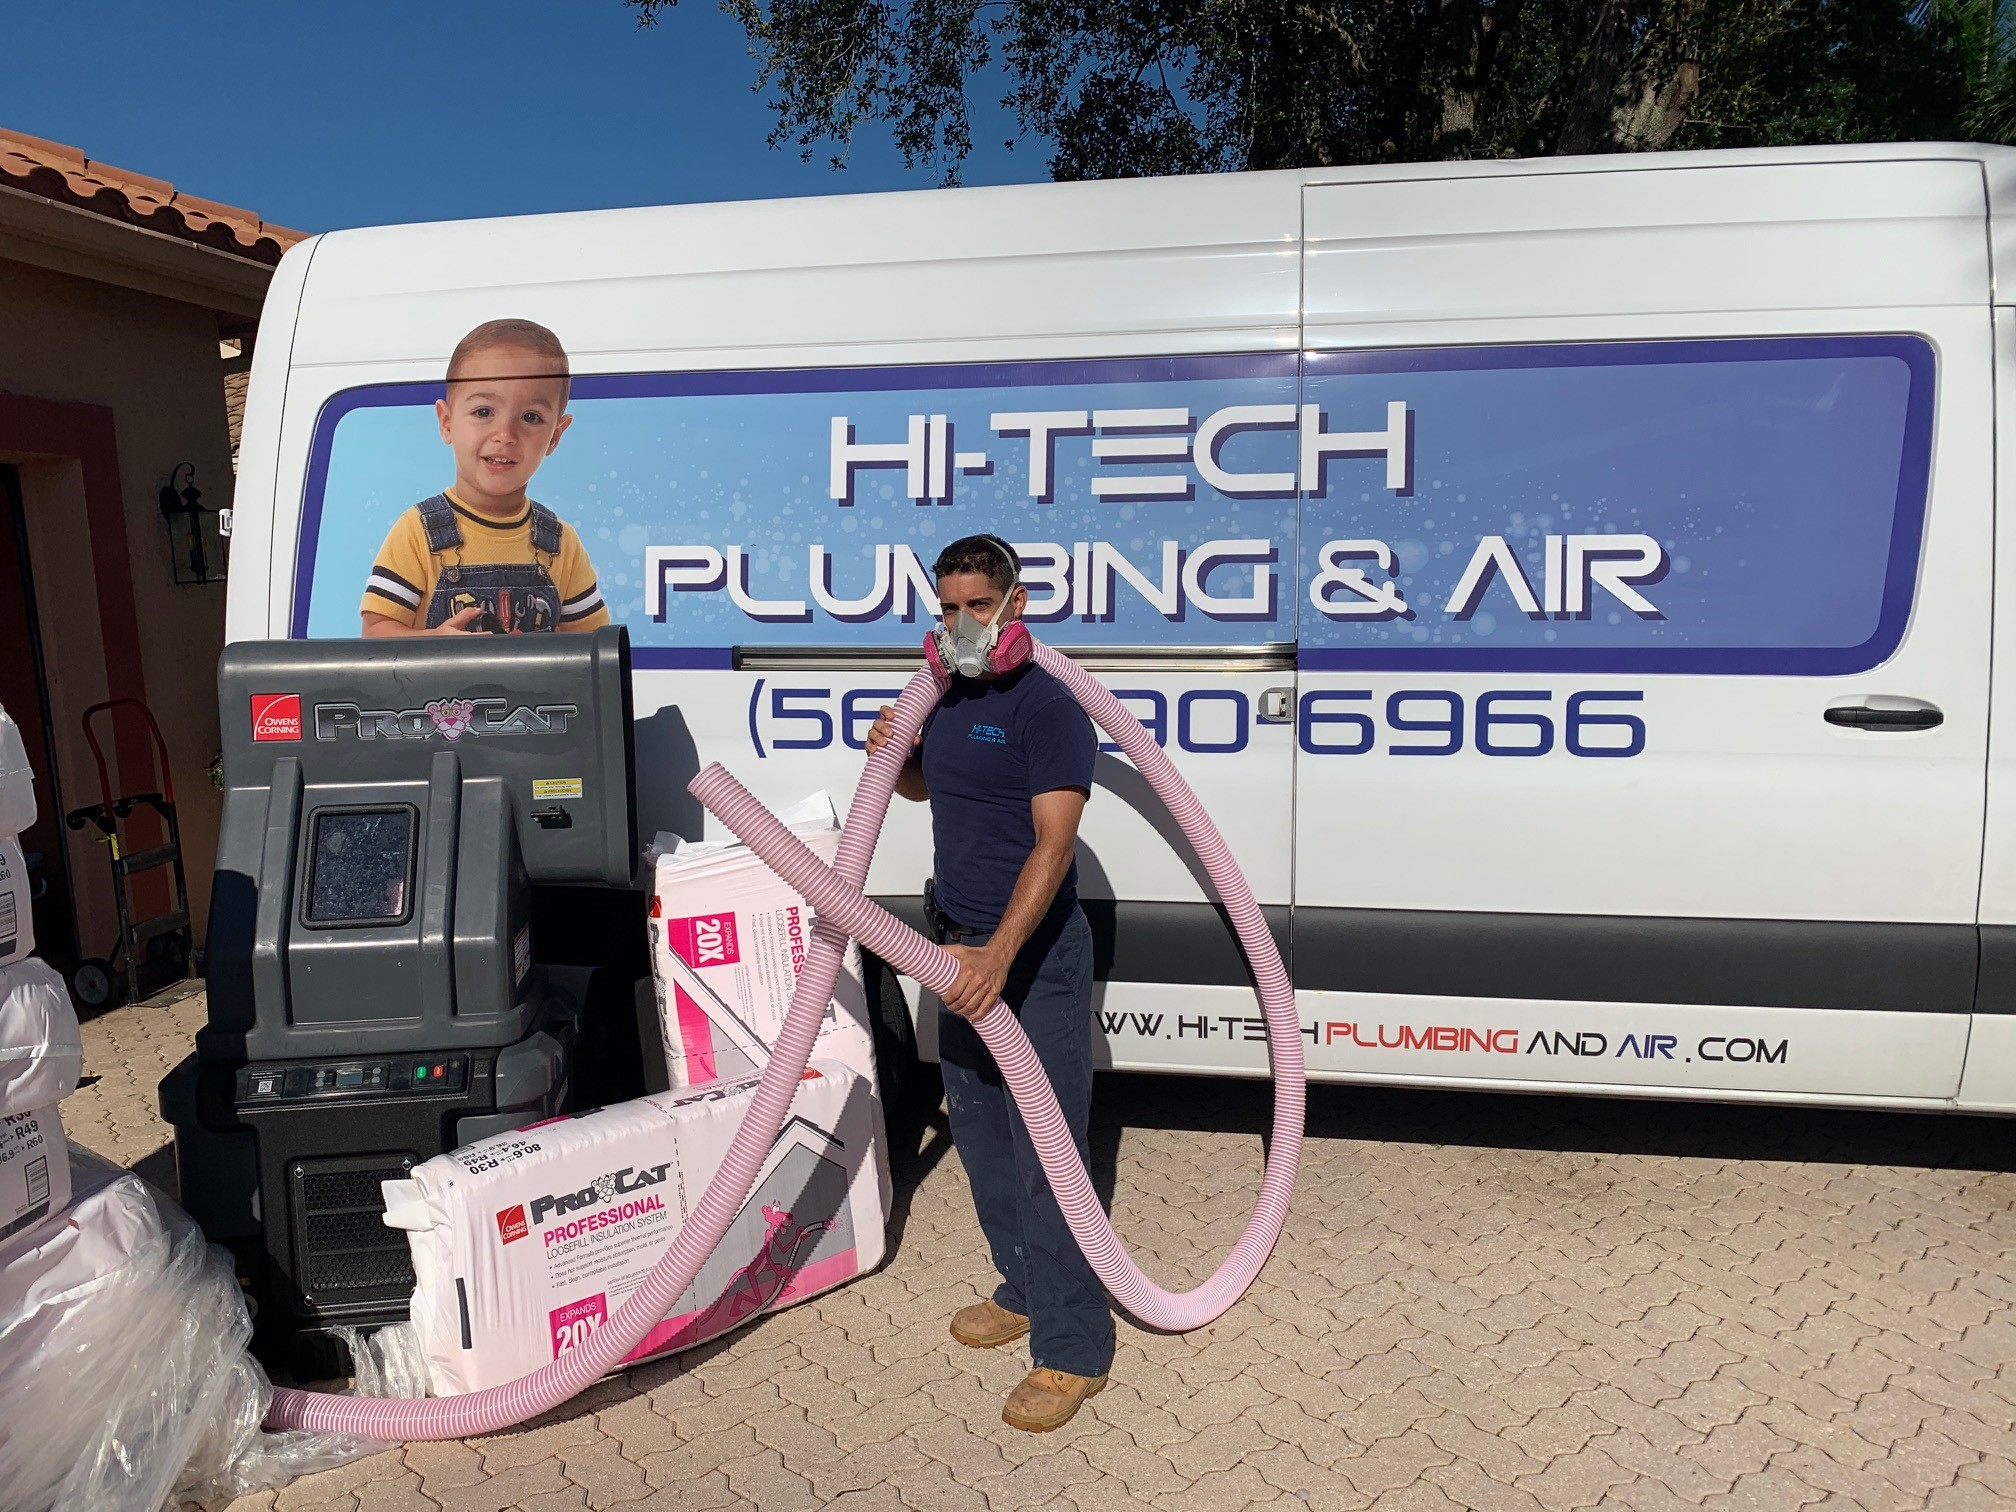 Hi-Tech Plumbing & Air